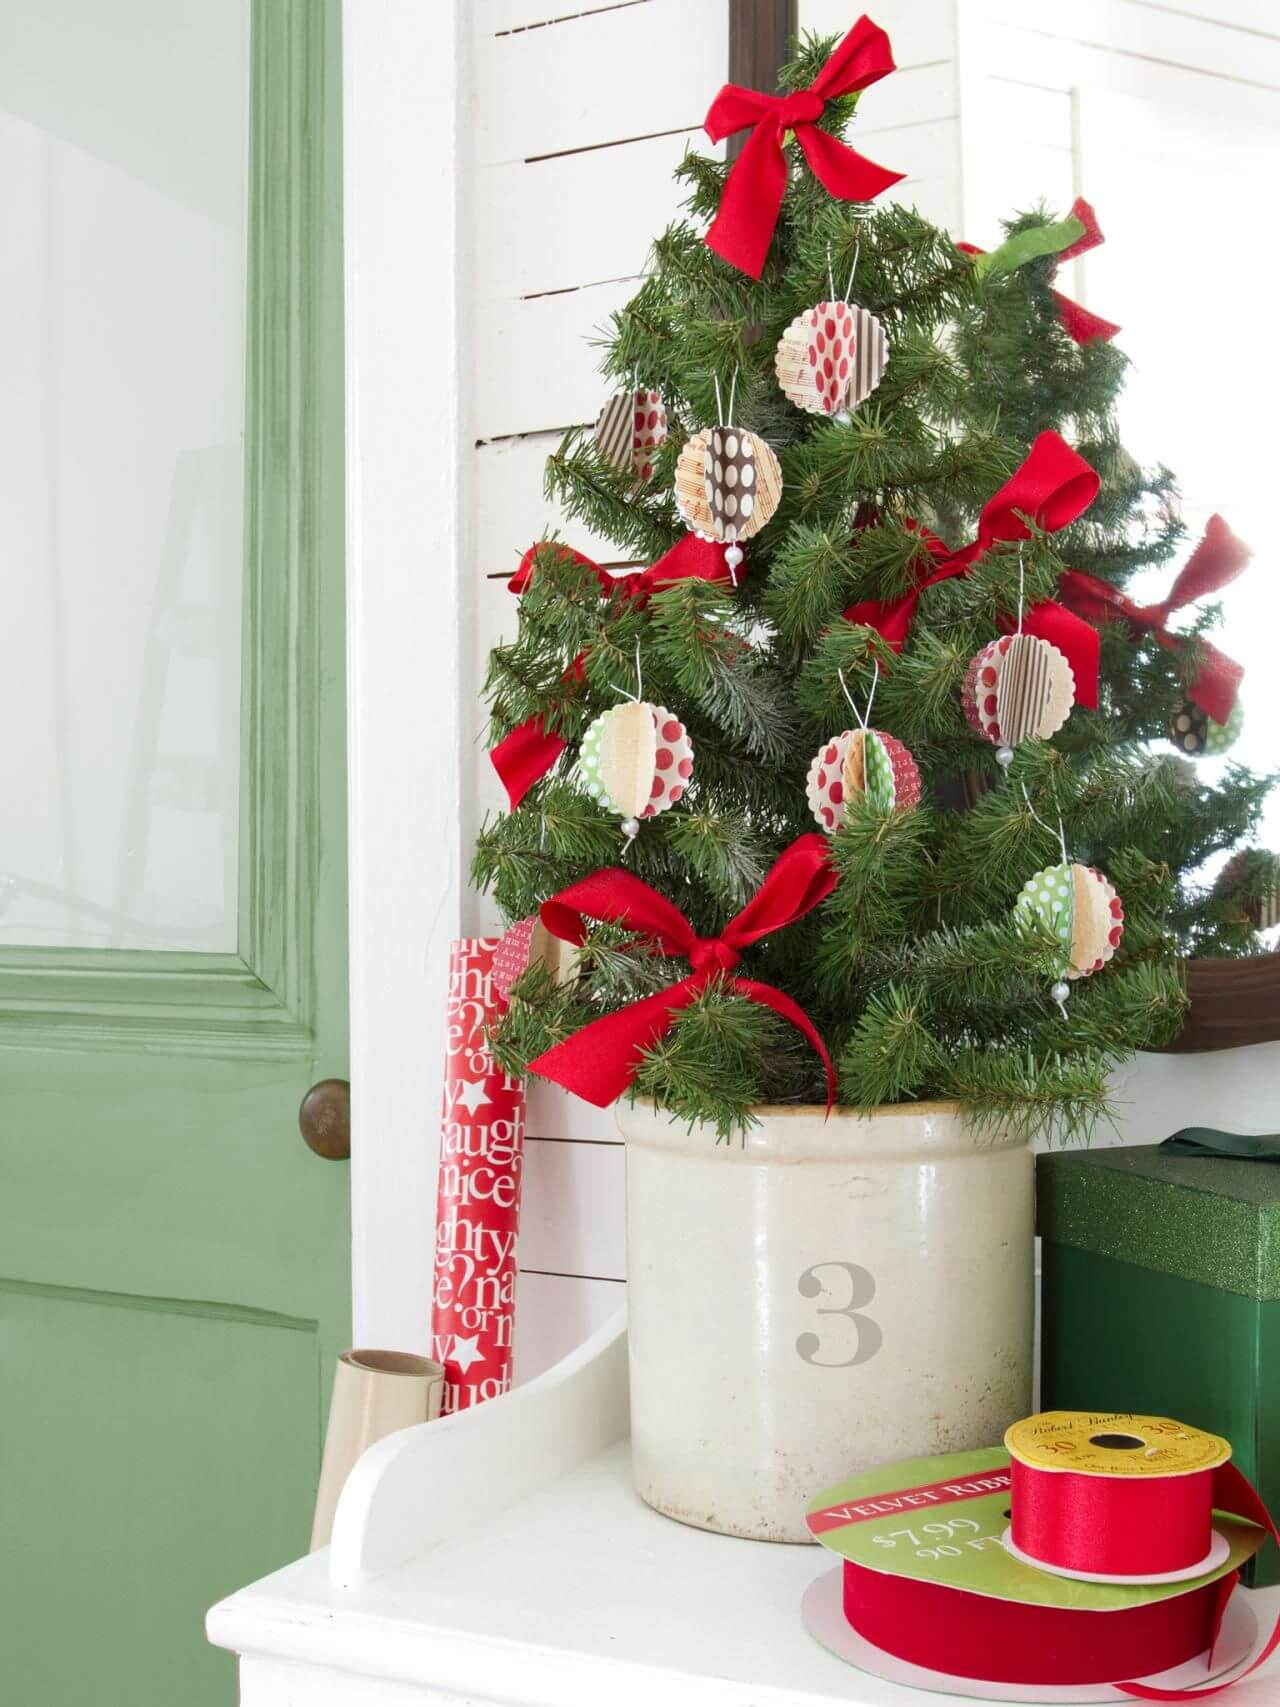 Tabletop christmas tree decorating ideas - Tabletop Diy Ornament Christmas Tree